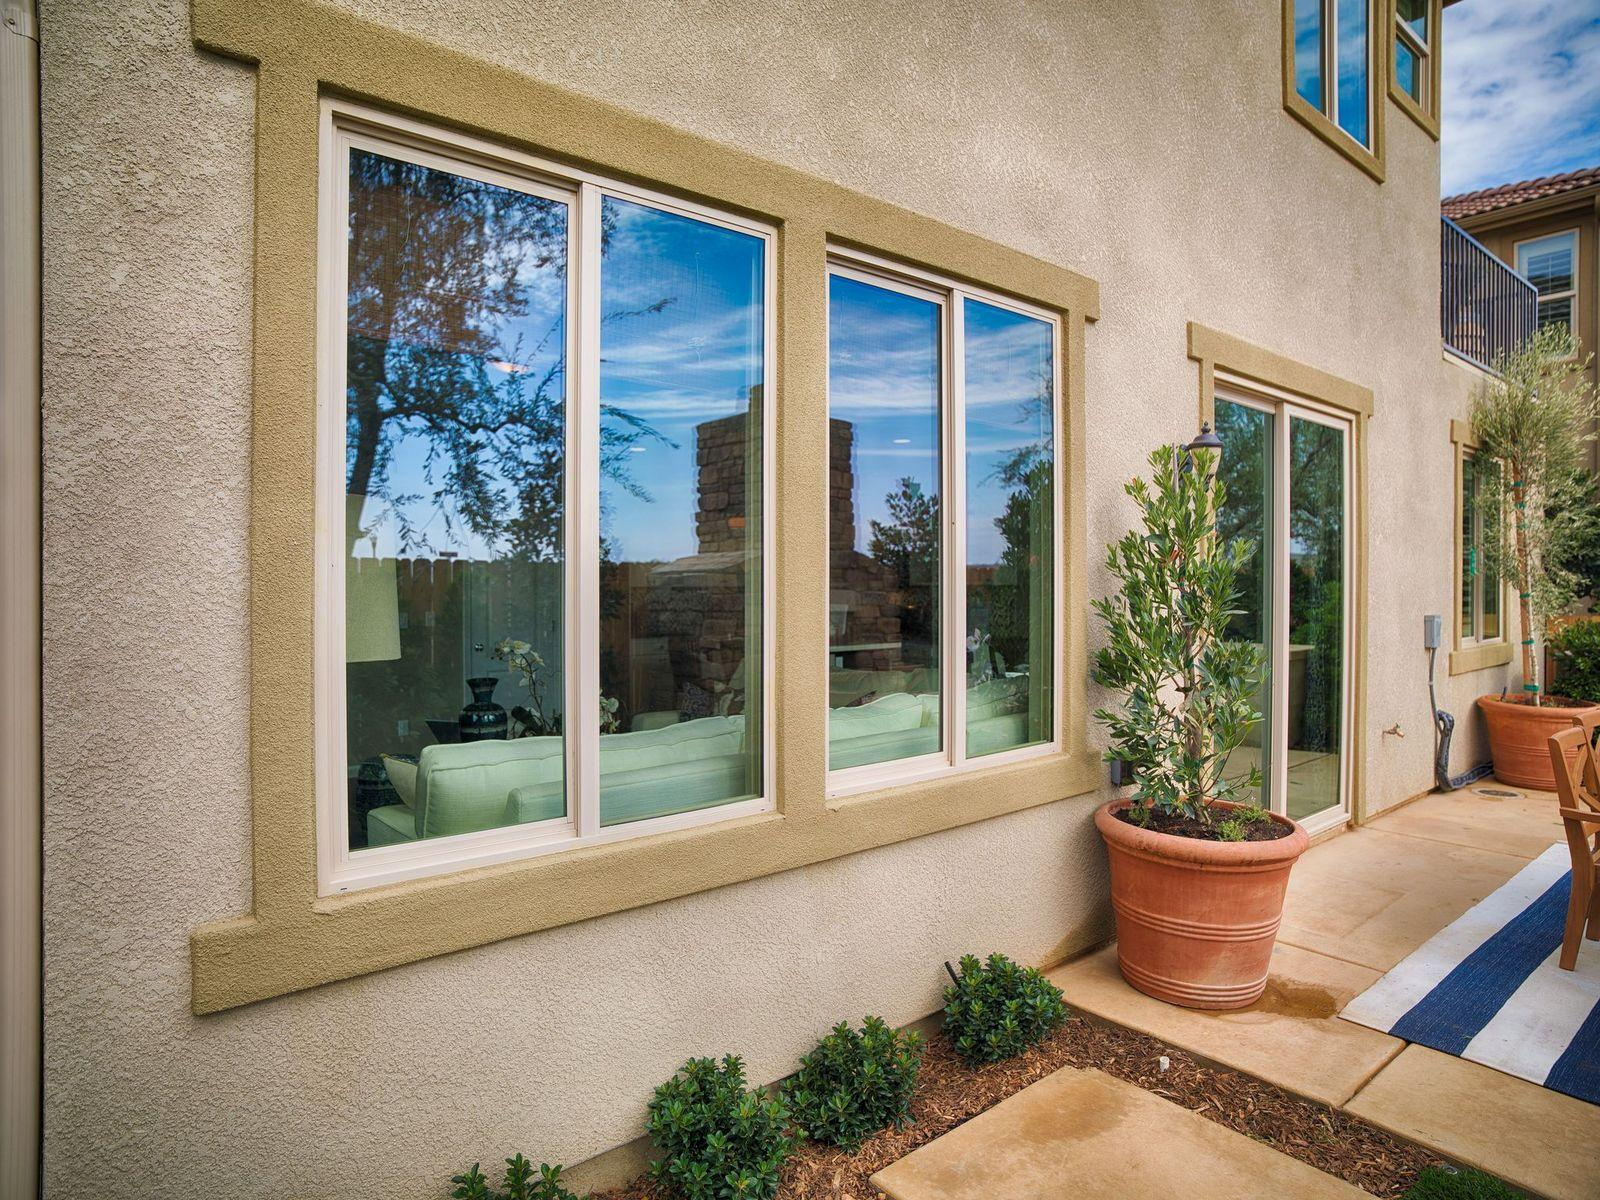 monte verde bay view windows from outside stucco home